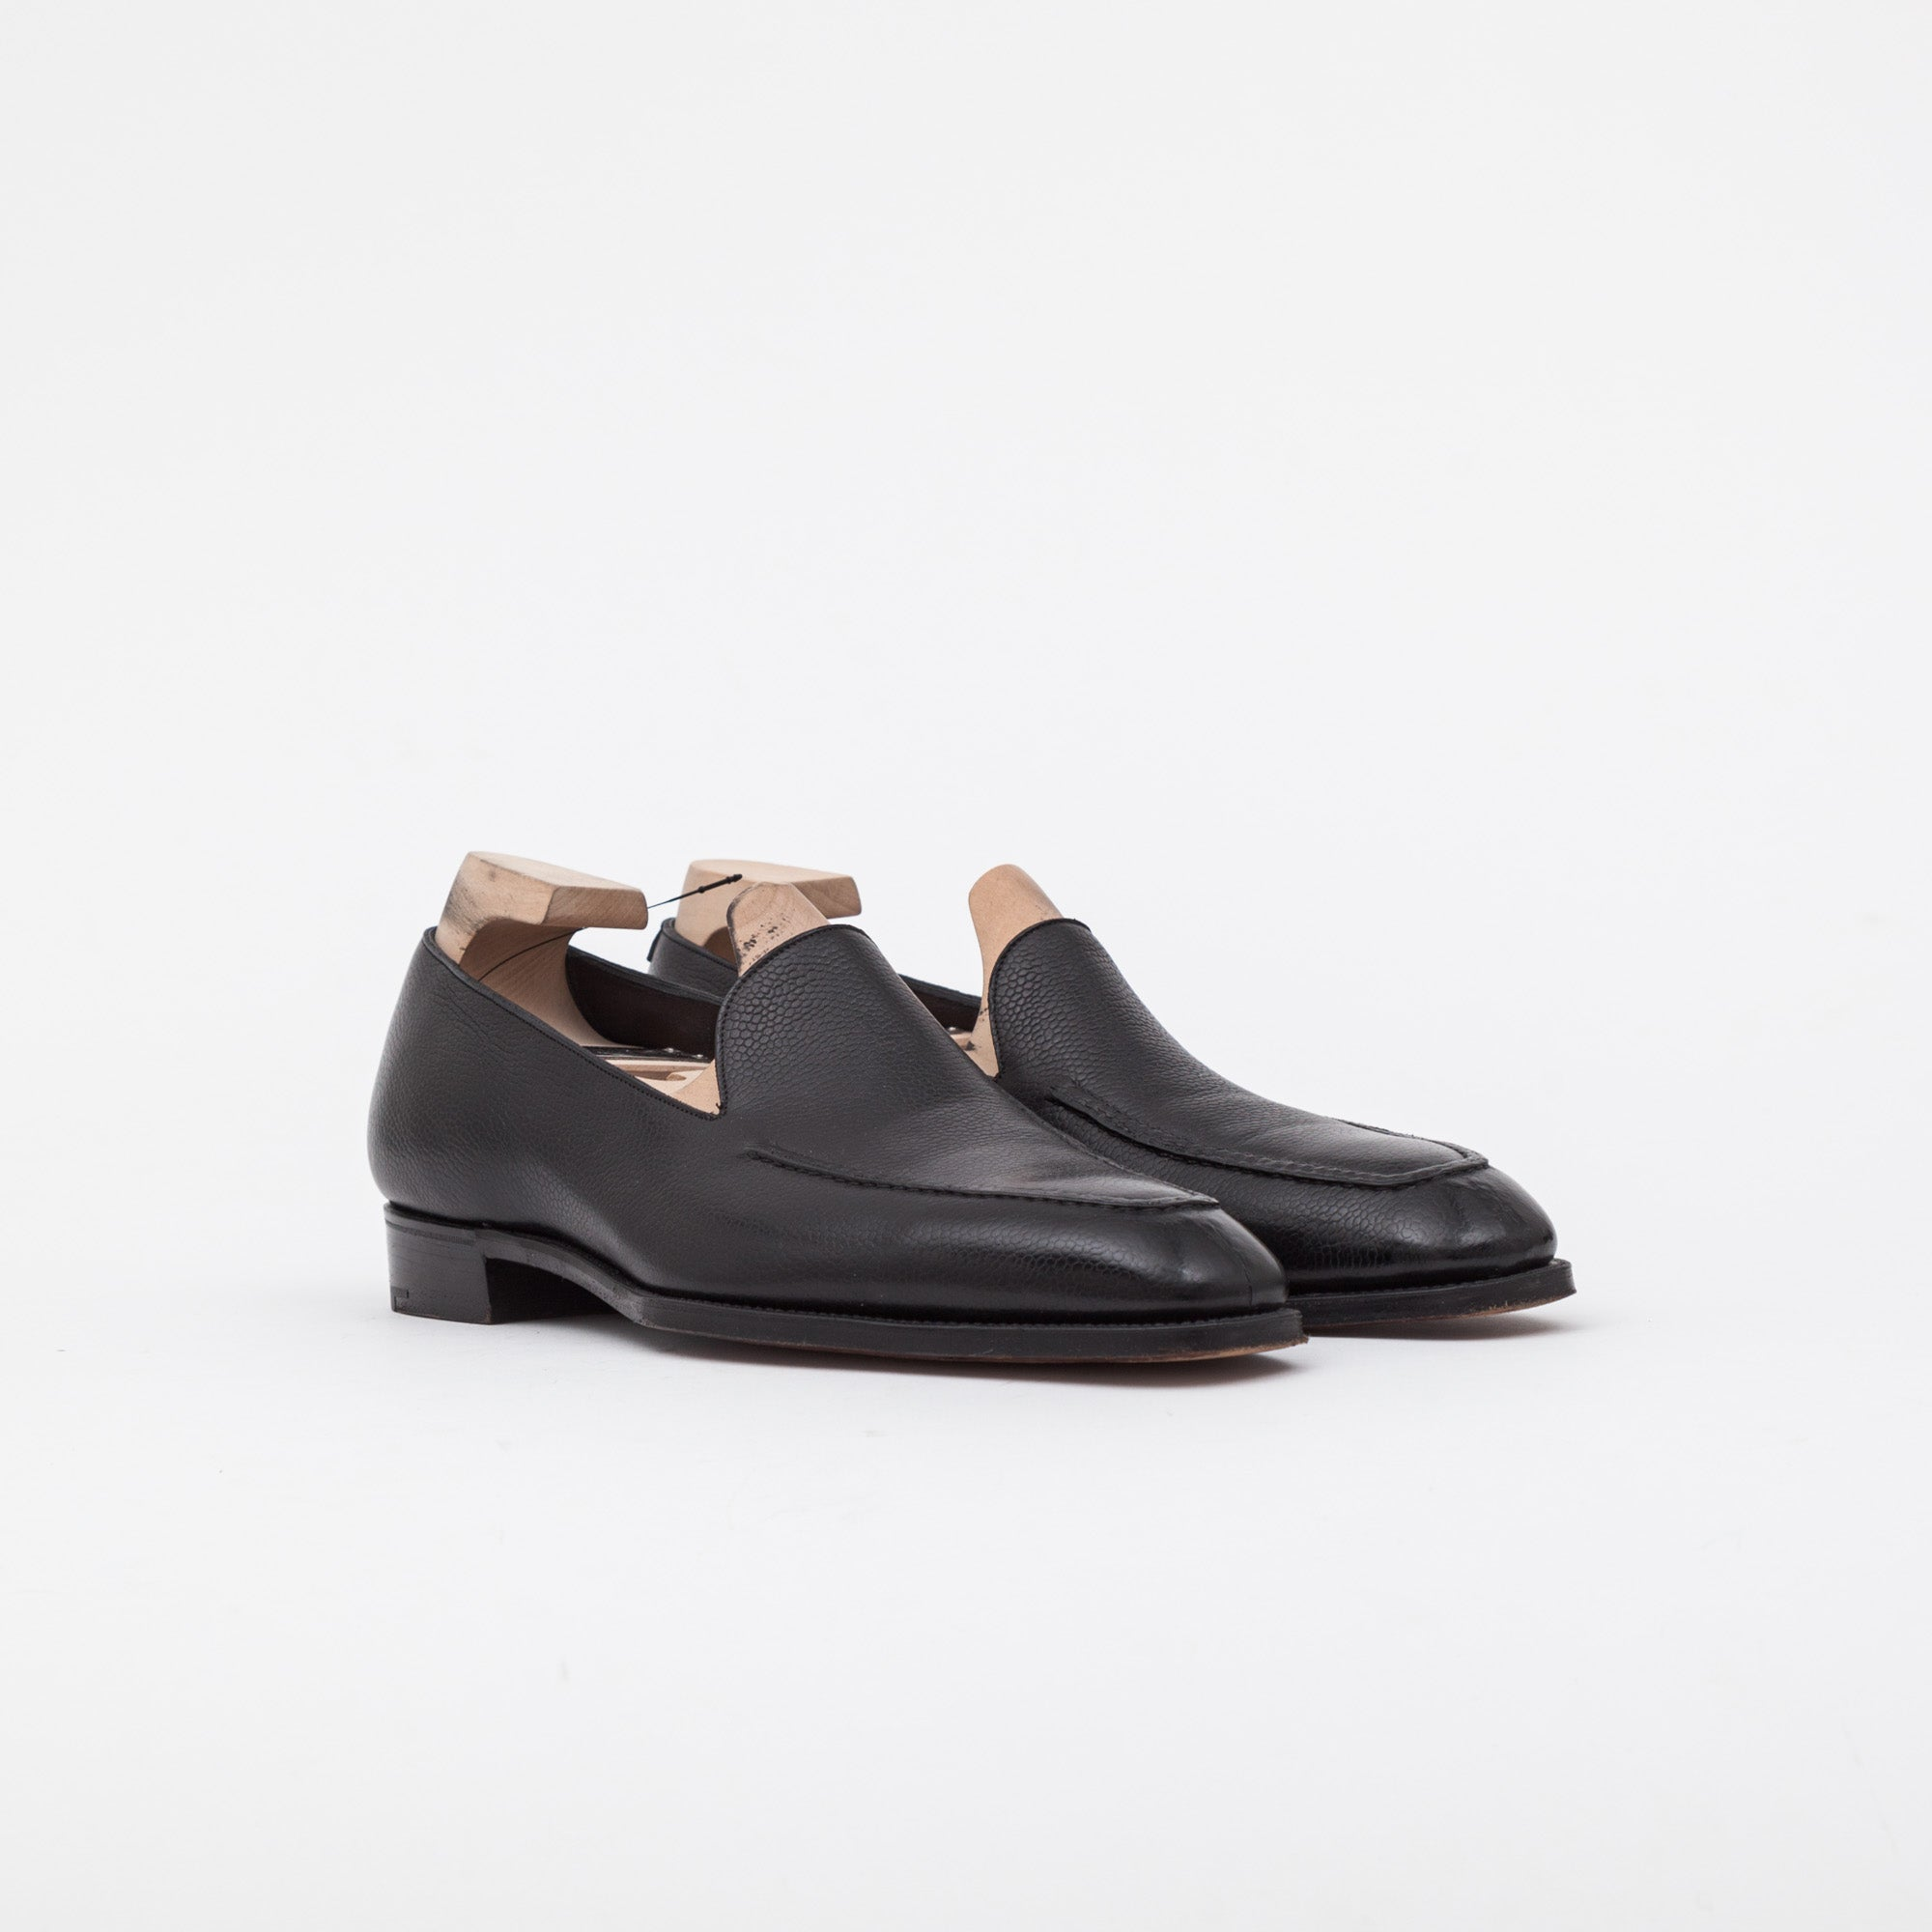 Grain Leather Amalfi Loafers